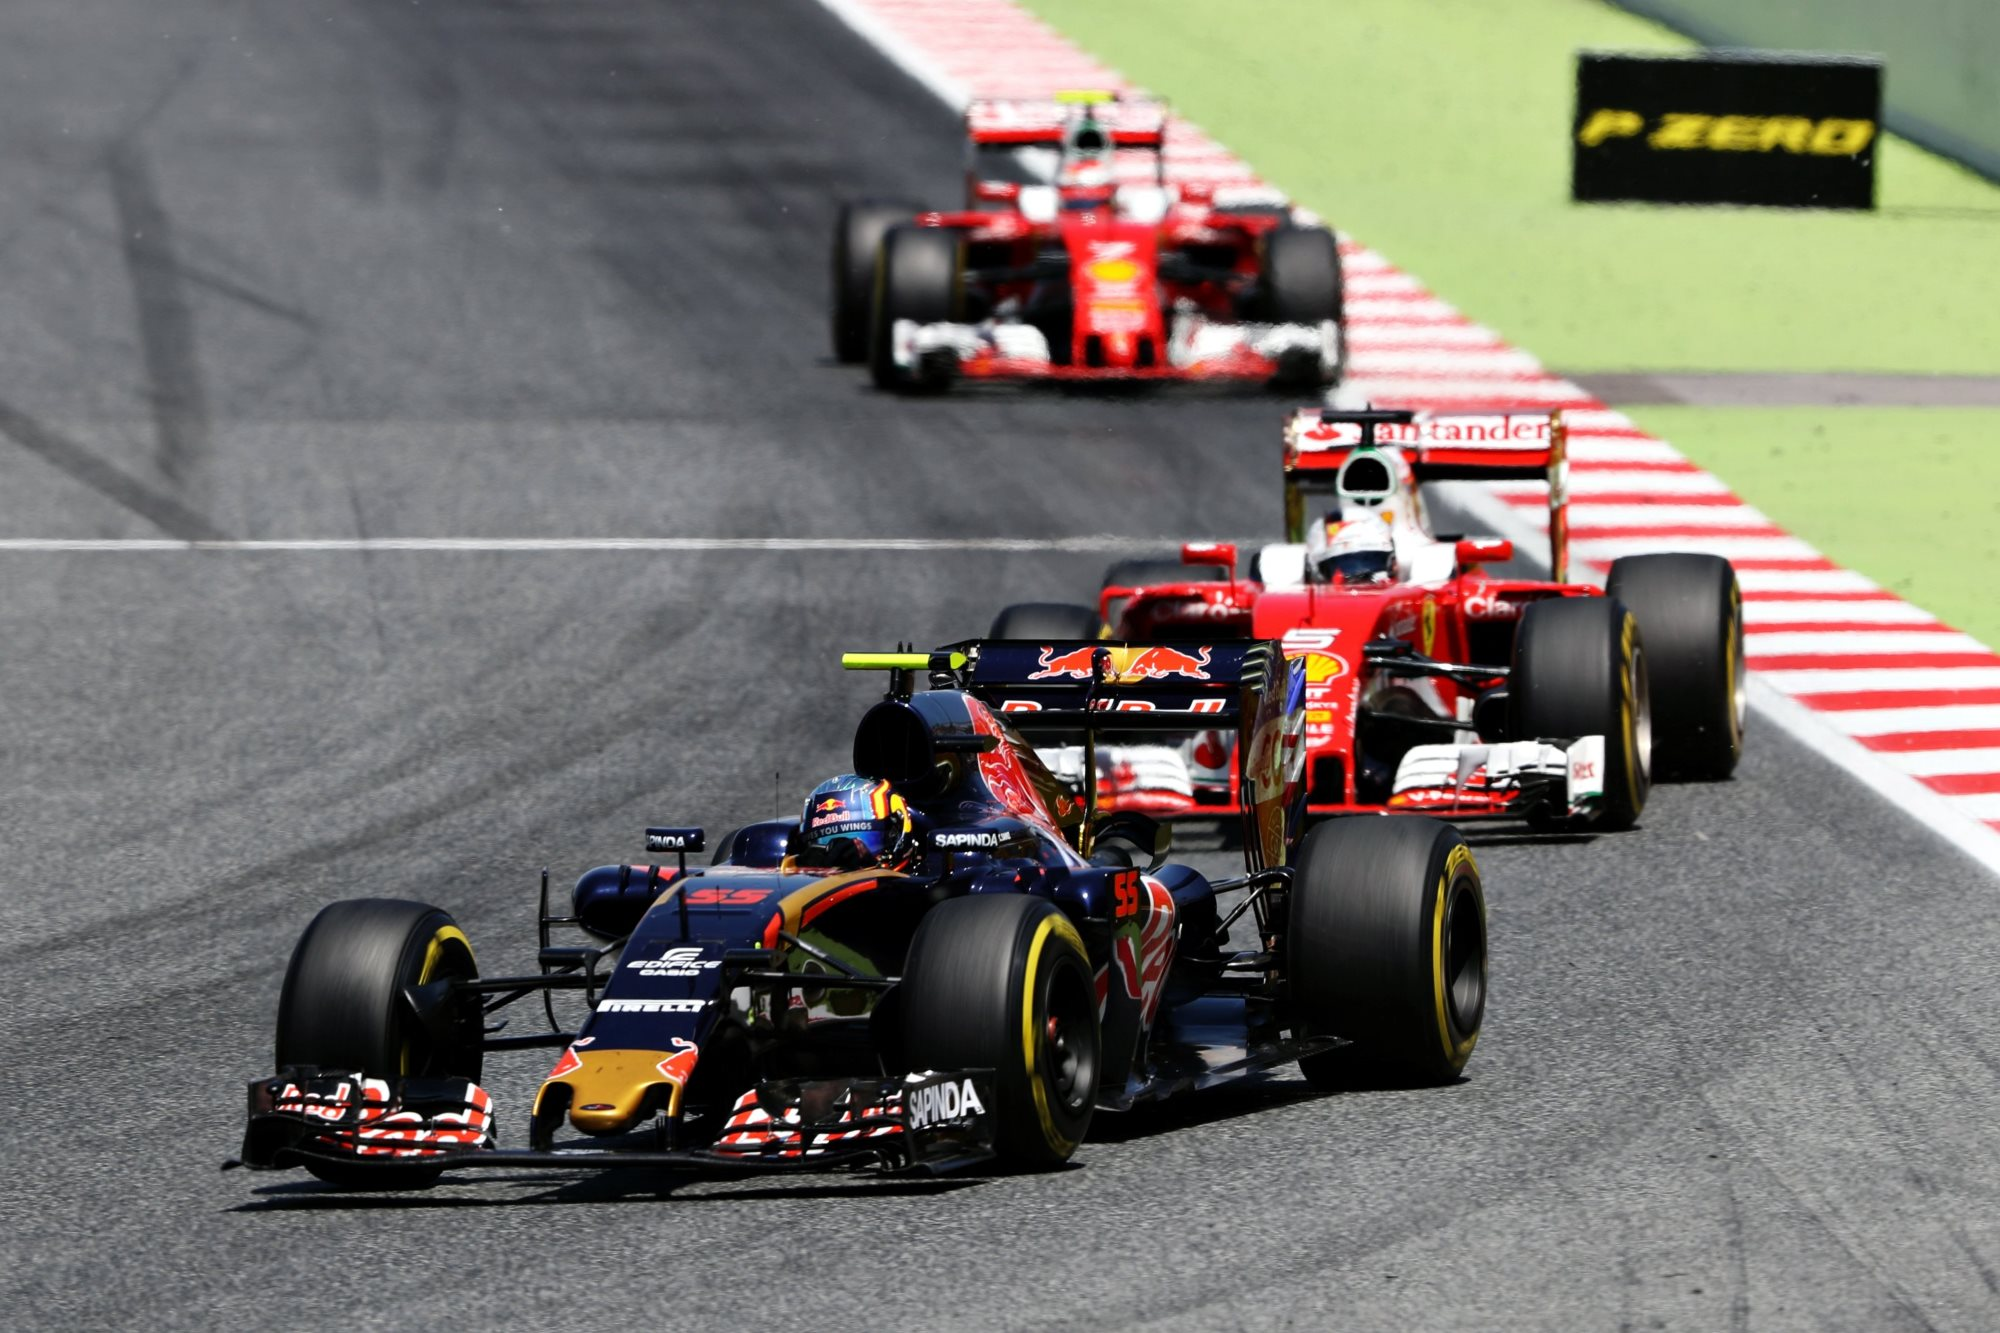 Carlos Sainz Toro Rosso Ferrari STR11 leads Vettel and Raikkonen in Ferrari SF16-H Spain GP F1 2016 Foto Red Bull